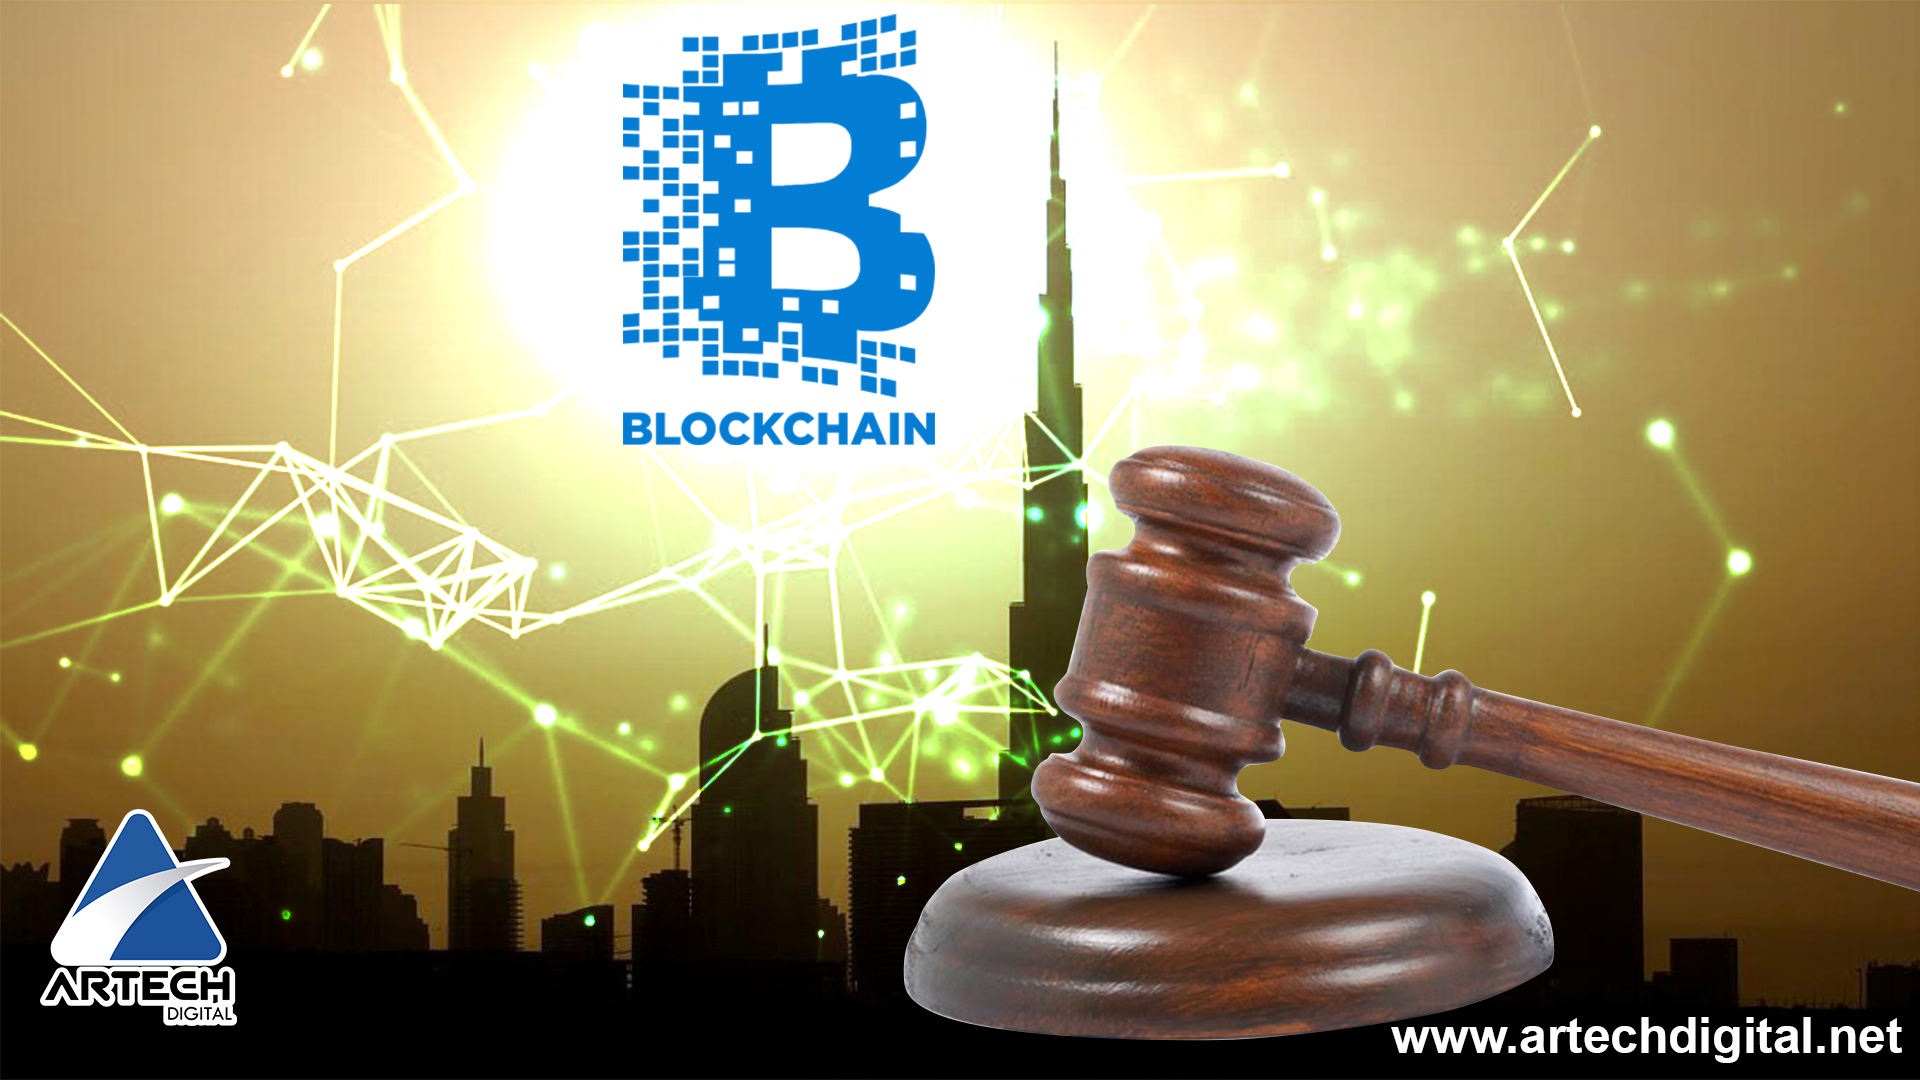 Corte legal - Corte Blockchain